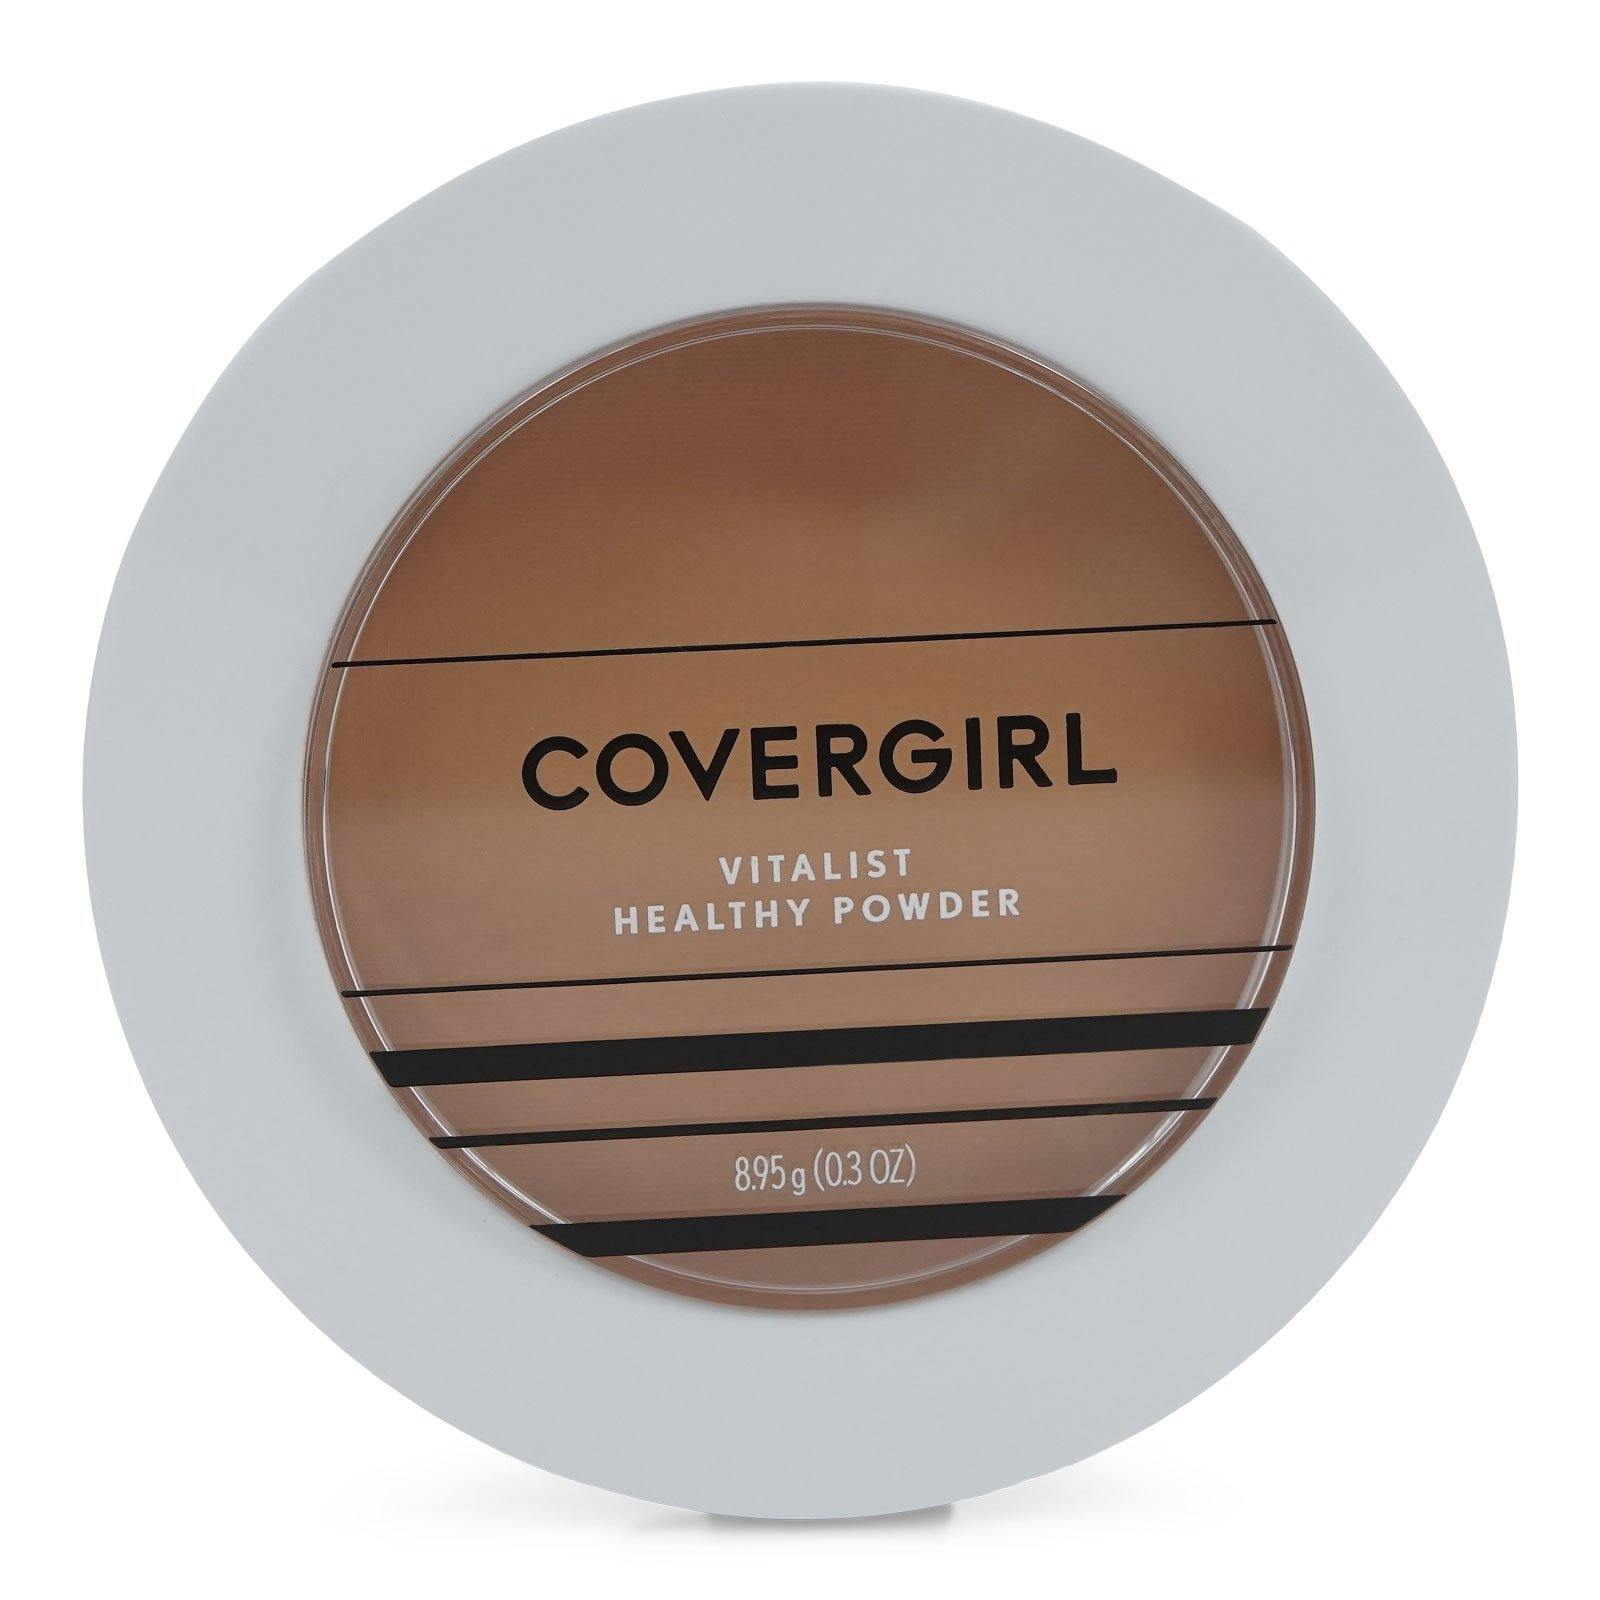 COVERGIRL VITALIST HEALTHY POWDER- WARM BEIGE (12/cs)